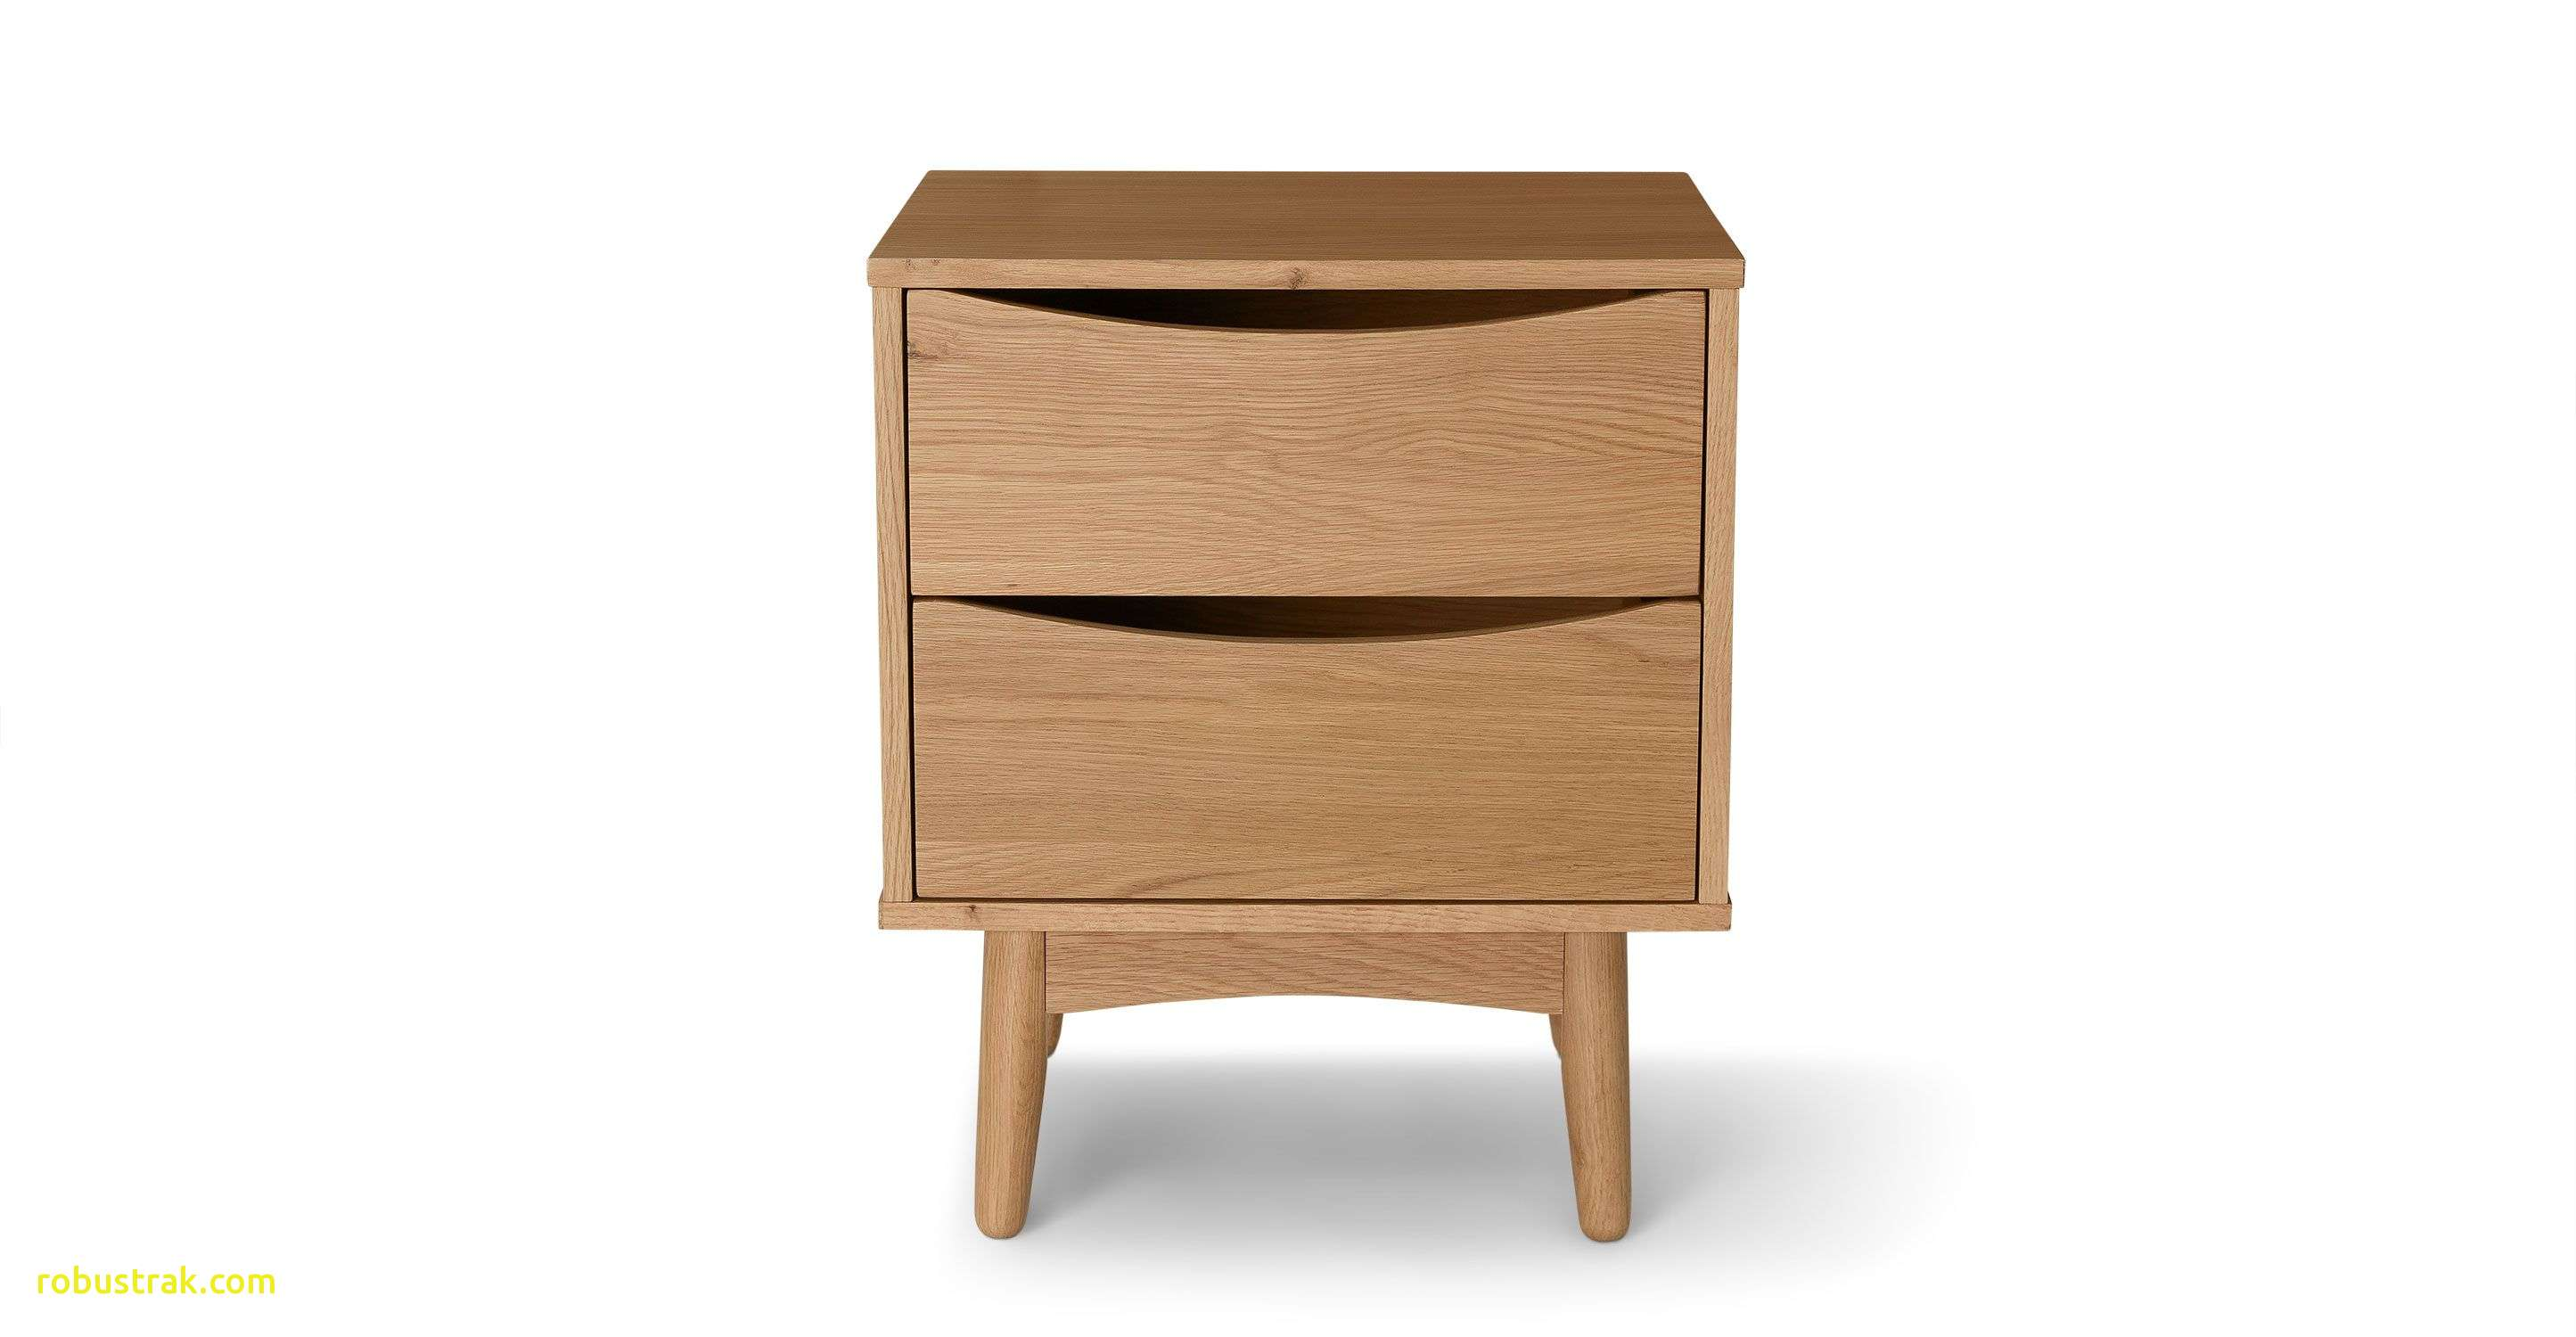 lovely mid century modern night stand home design ideas inspirational culla oak drawer nightstand nightstands article alton accent table covers bbq prep cart nautical end tables